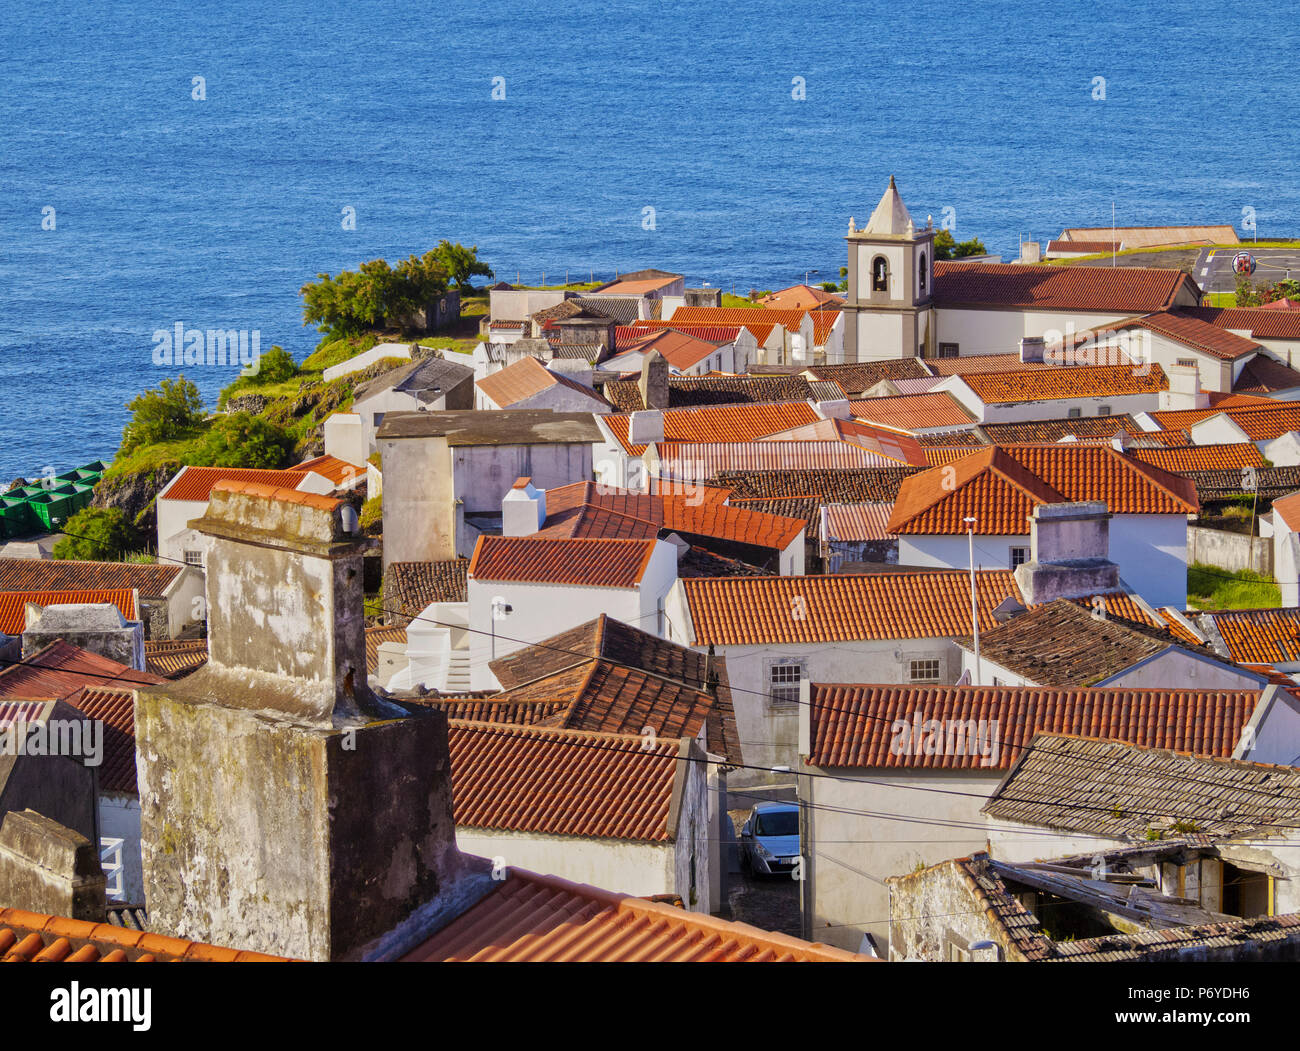 Portugal, Azores, Corvo, Vila do Corvo, augmentation de la vue de la ville. Photo Stock